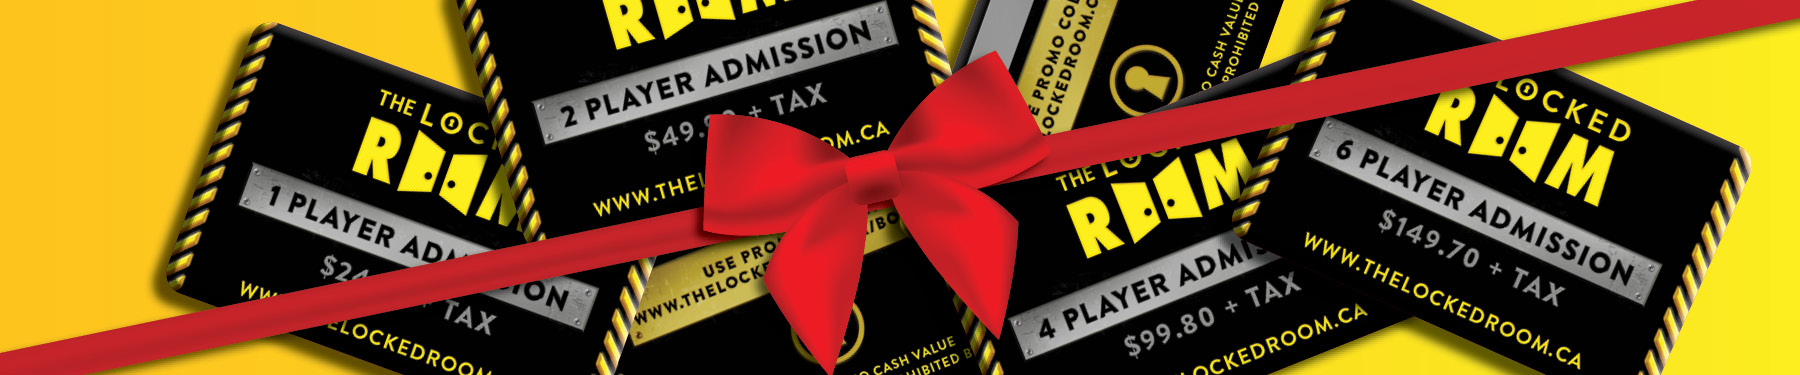 05_gift_cards_image